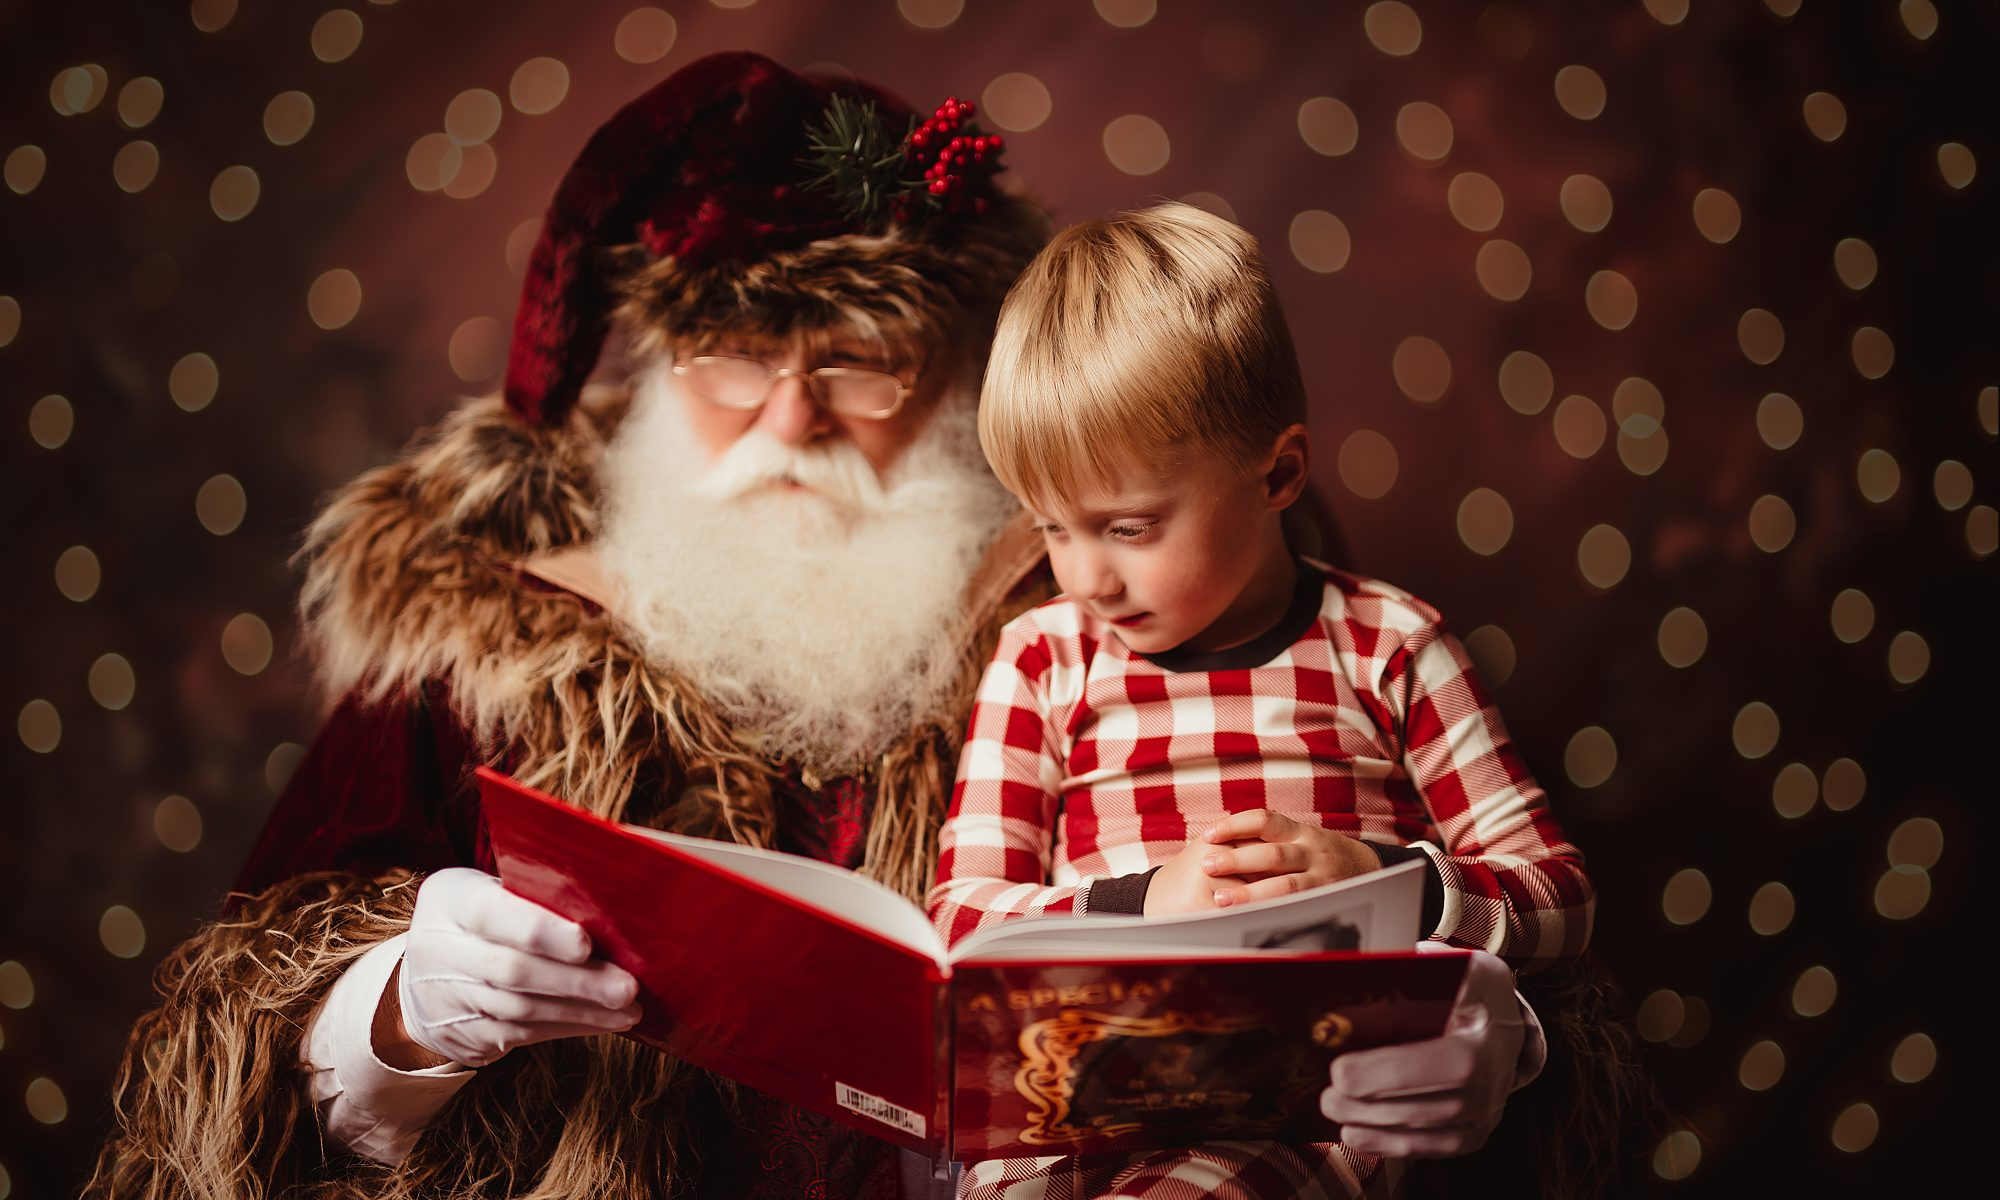 A Moment With Santa | Kara Reese Photography